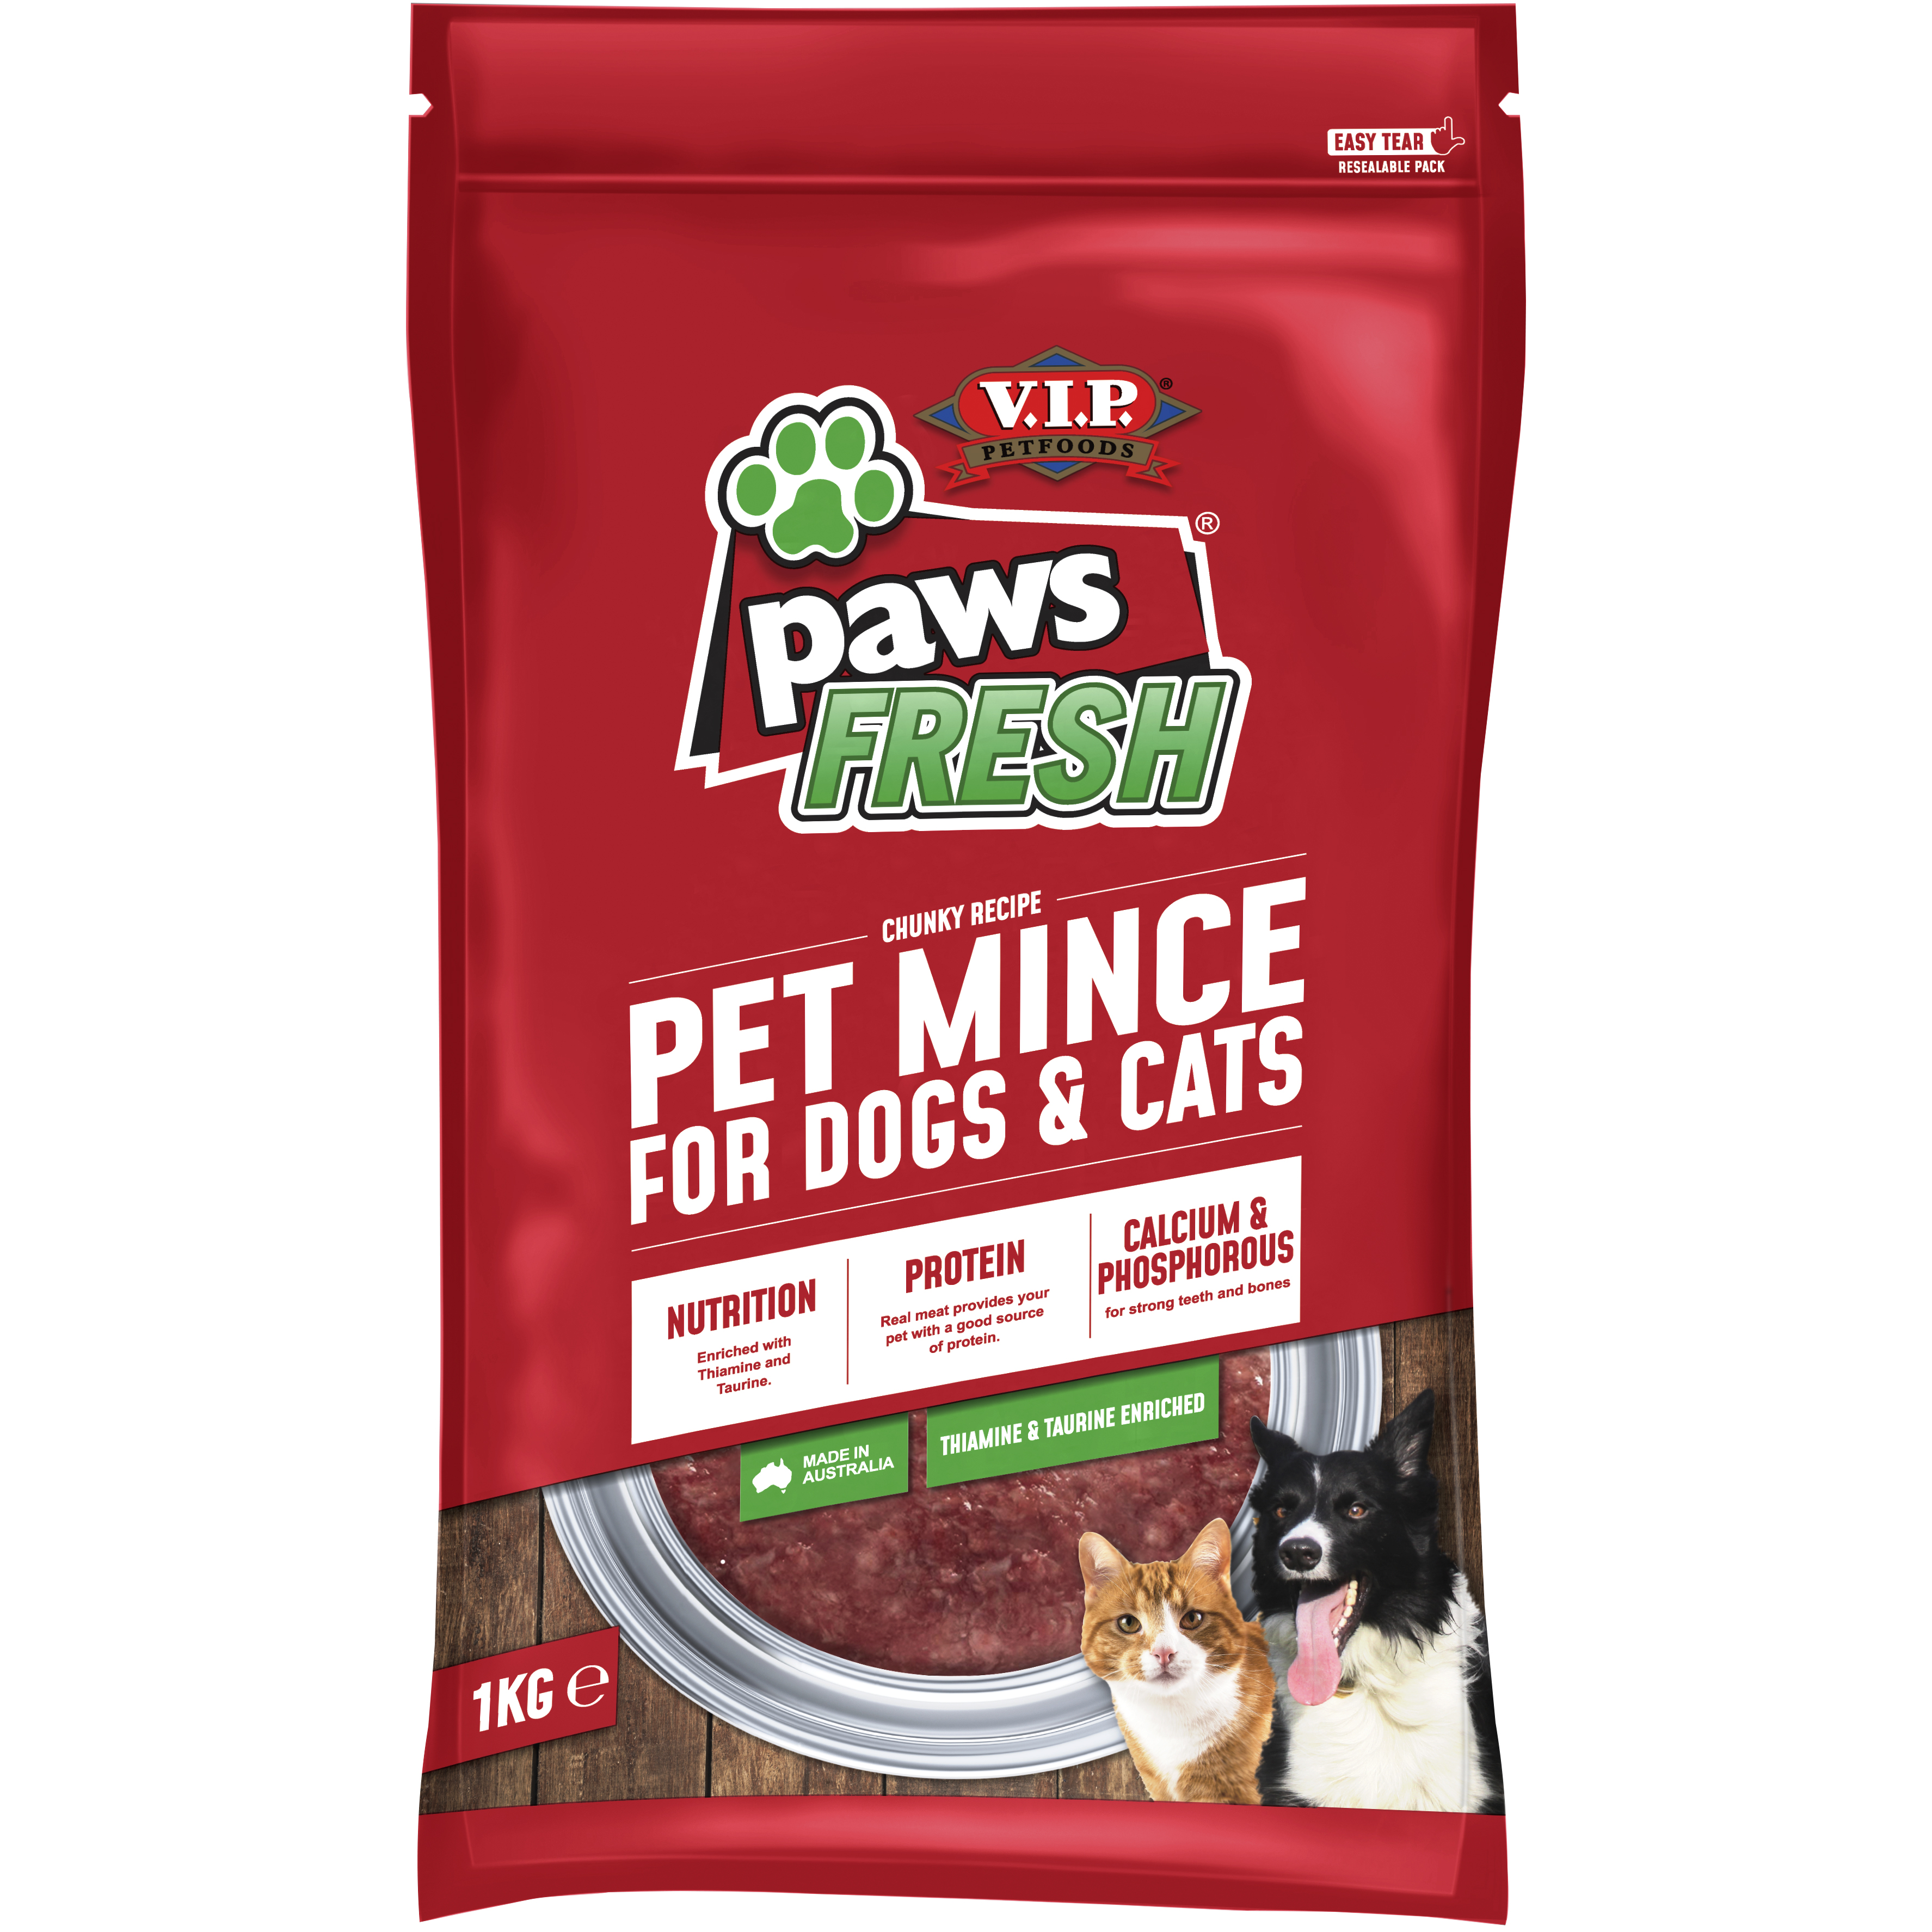 V.I.P. Petfoods | Pet Mince for Dogs & Cats 1kg | Chilled single | Front of pack